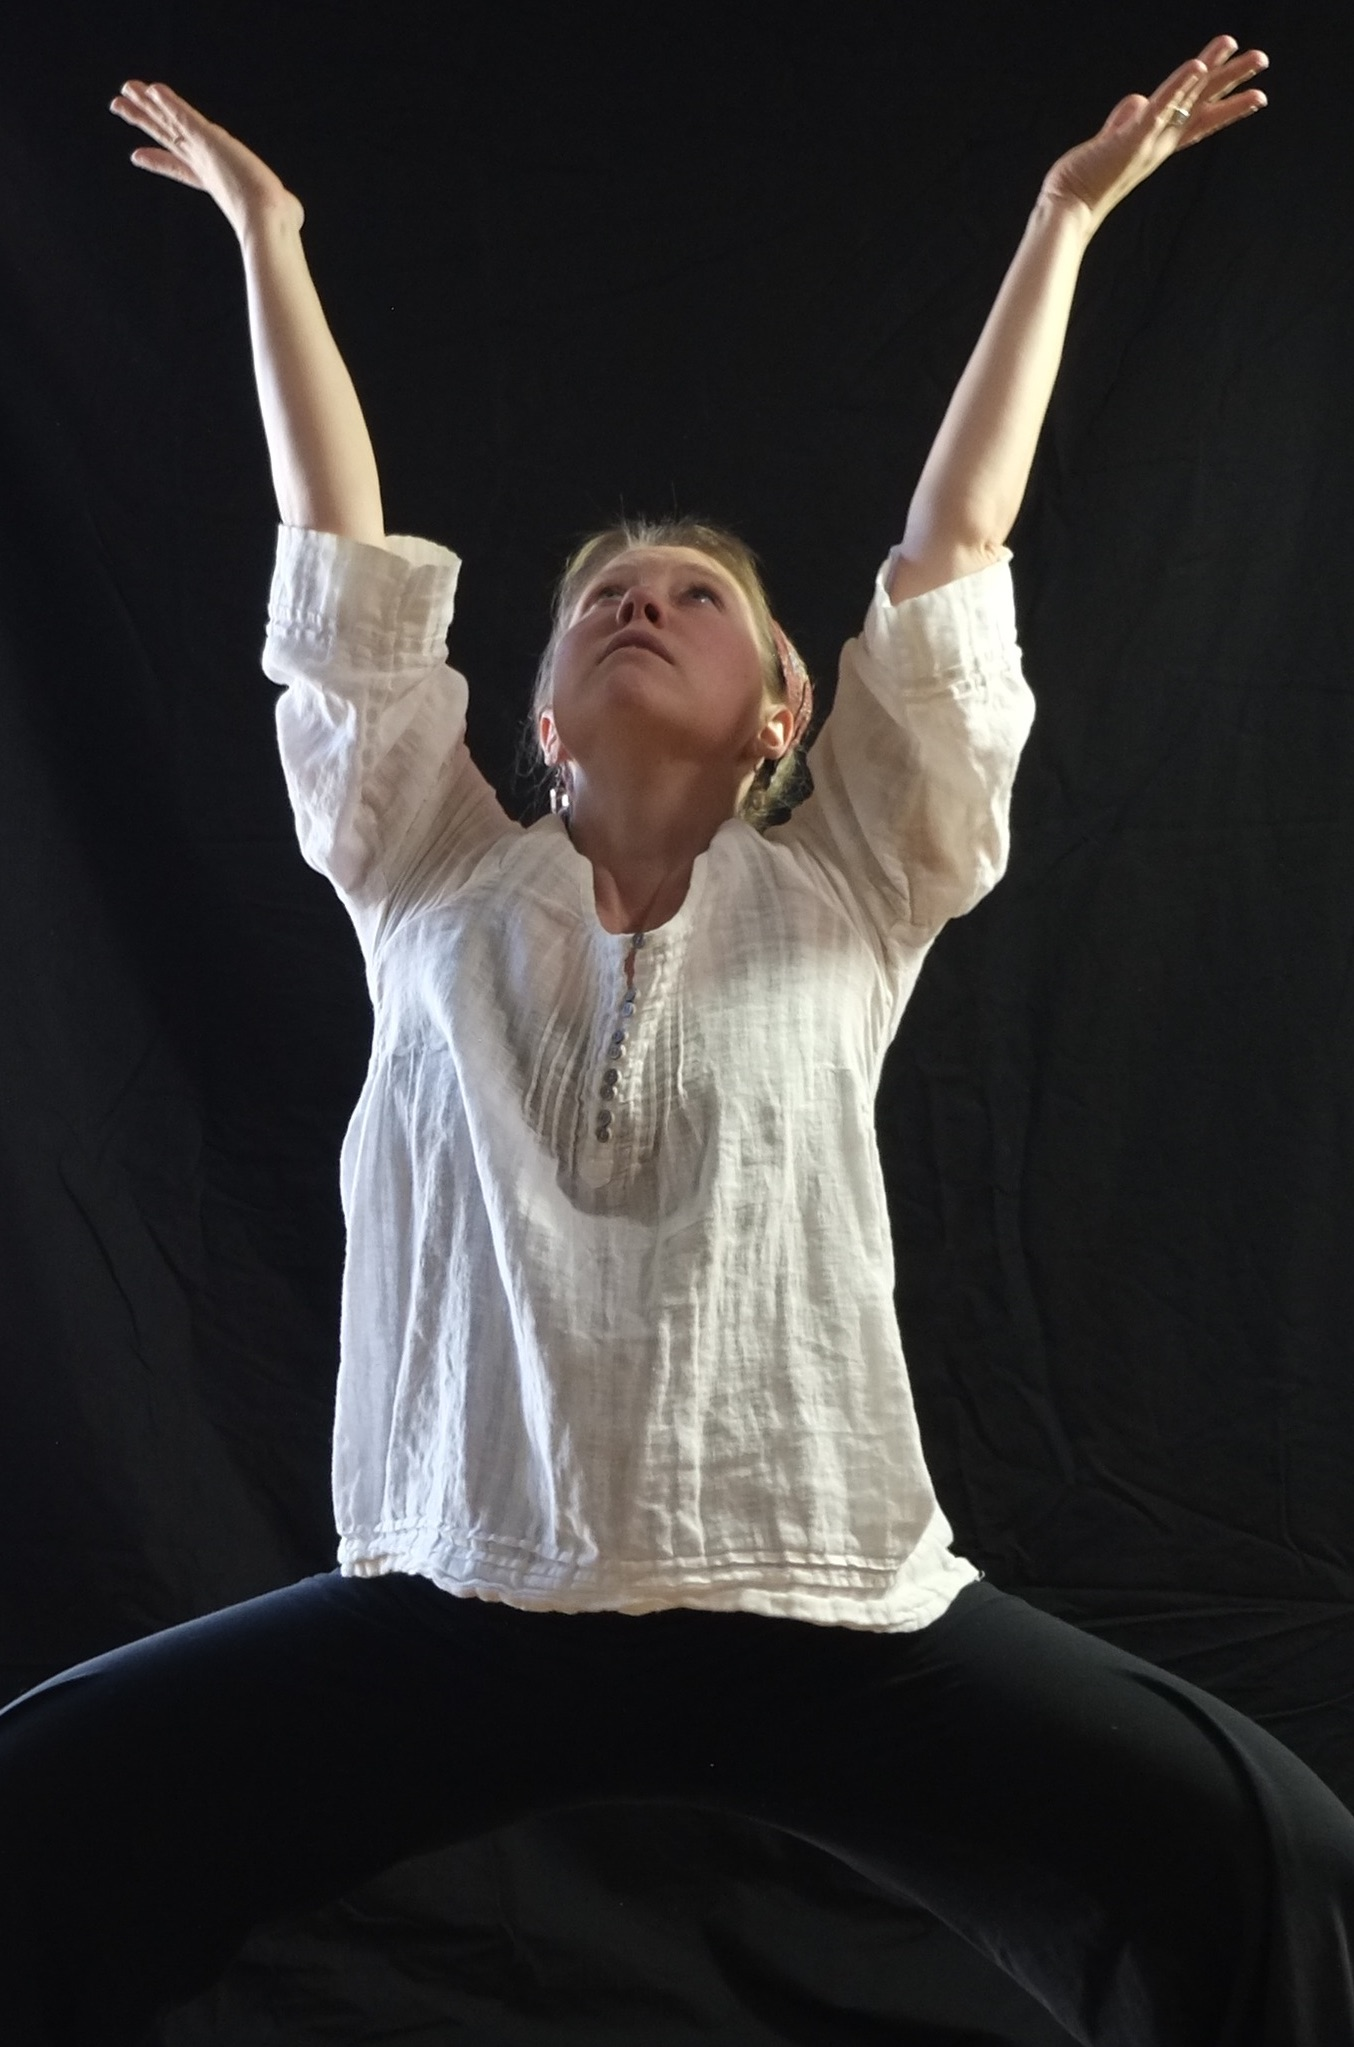 Be Who You Are.Cultivate a new relationship of body, mind, and spirit.Through deep conscious awareness of the body in a movement experience, there is the opportunity for transformation and healing, to truly embody and become your most authentic, true self. -